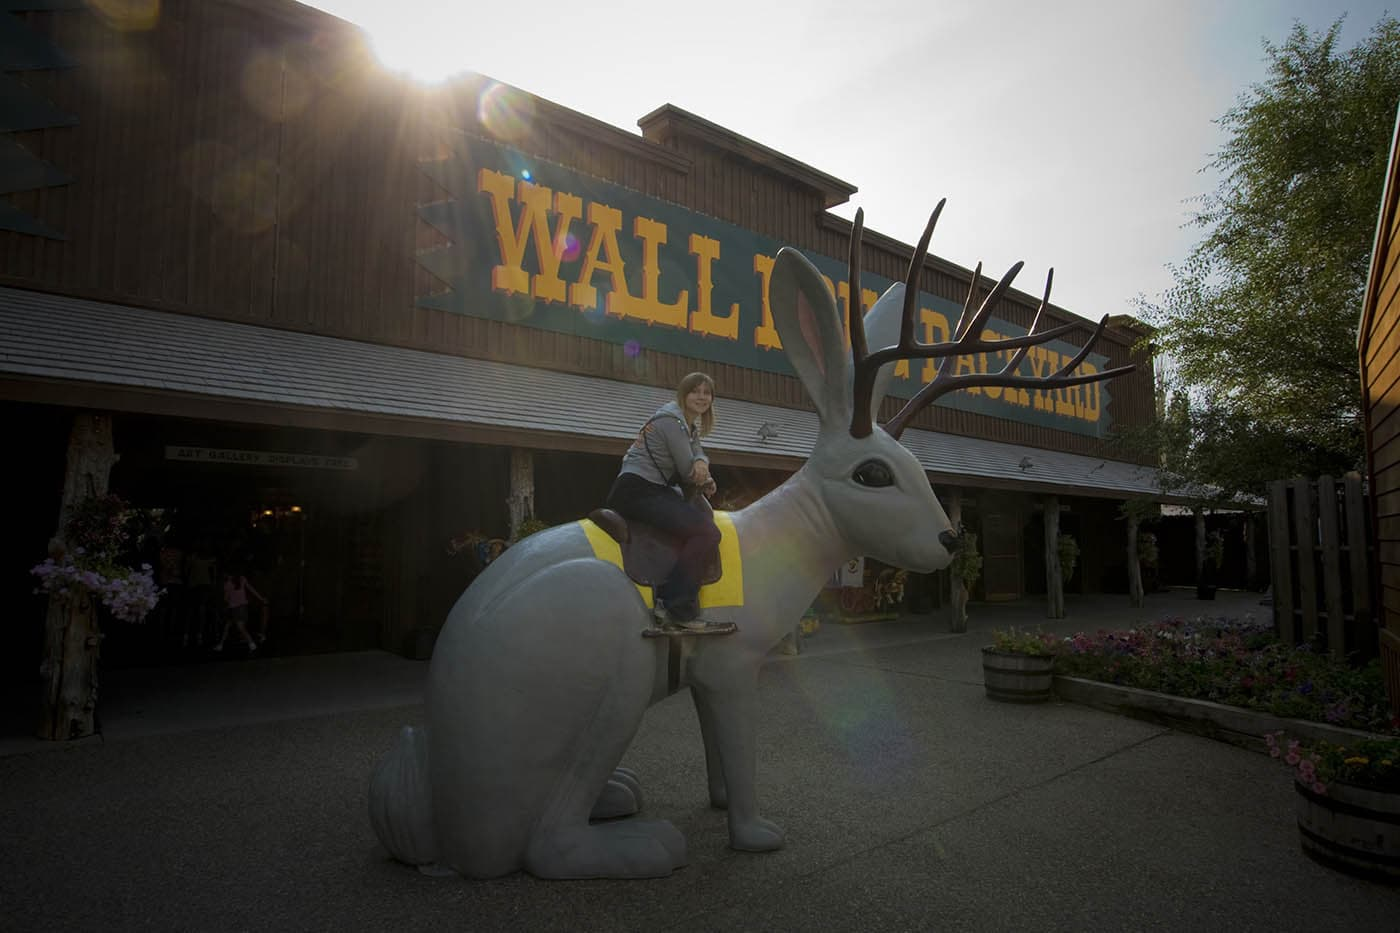 Wall Drug Store in Wall, South Dakota. Labor Day Chicago to Mount Rushmore Road Trip.